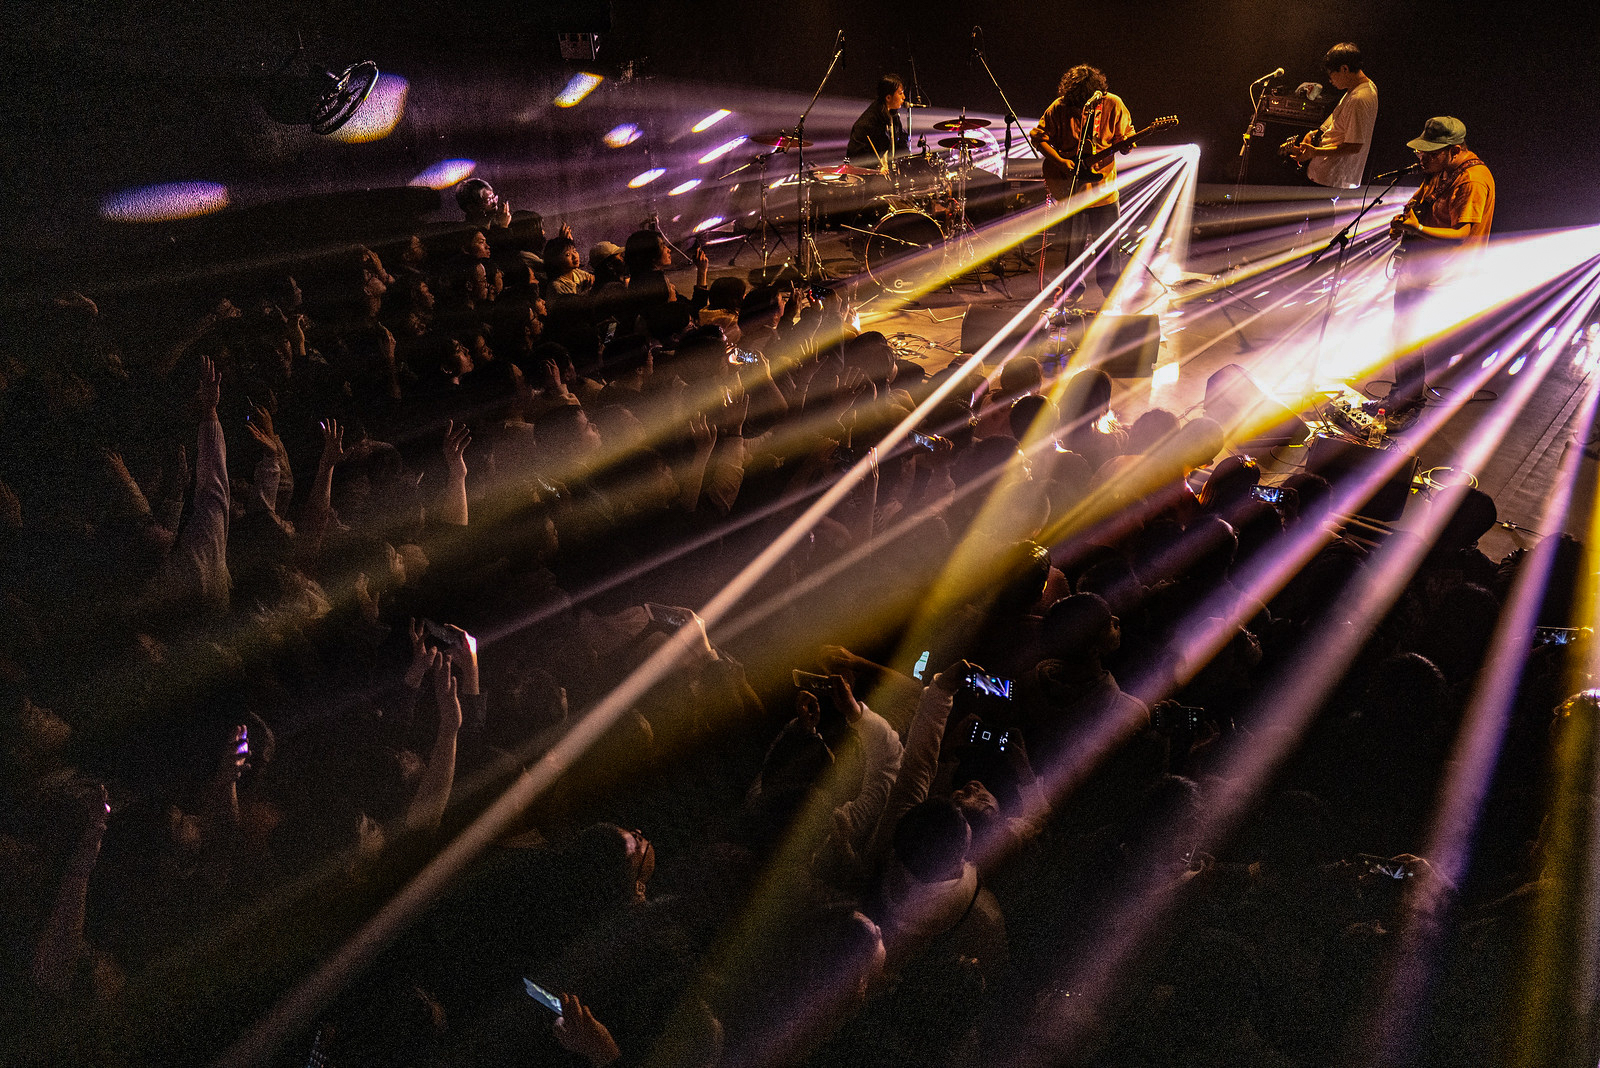 A concert, like this one at VOX Live House, is a typical part of night life for youth in Wuhan. Photo by Jamie Fouss